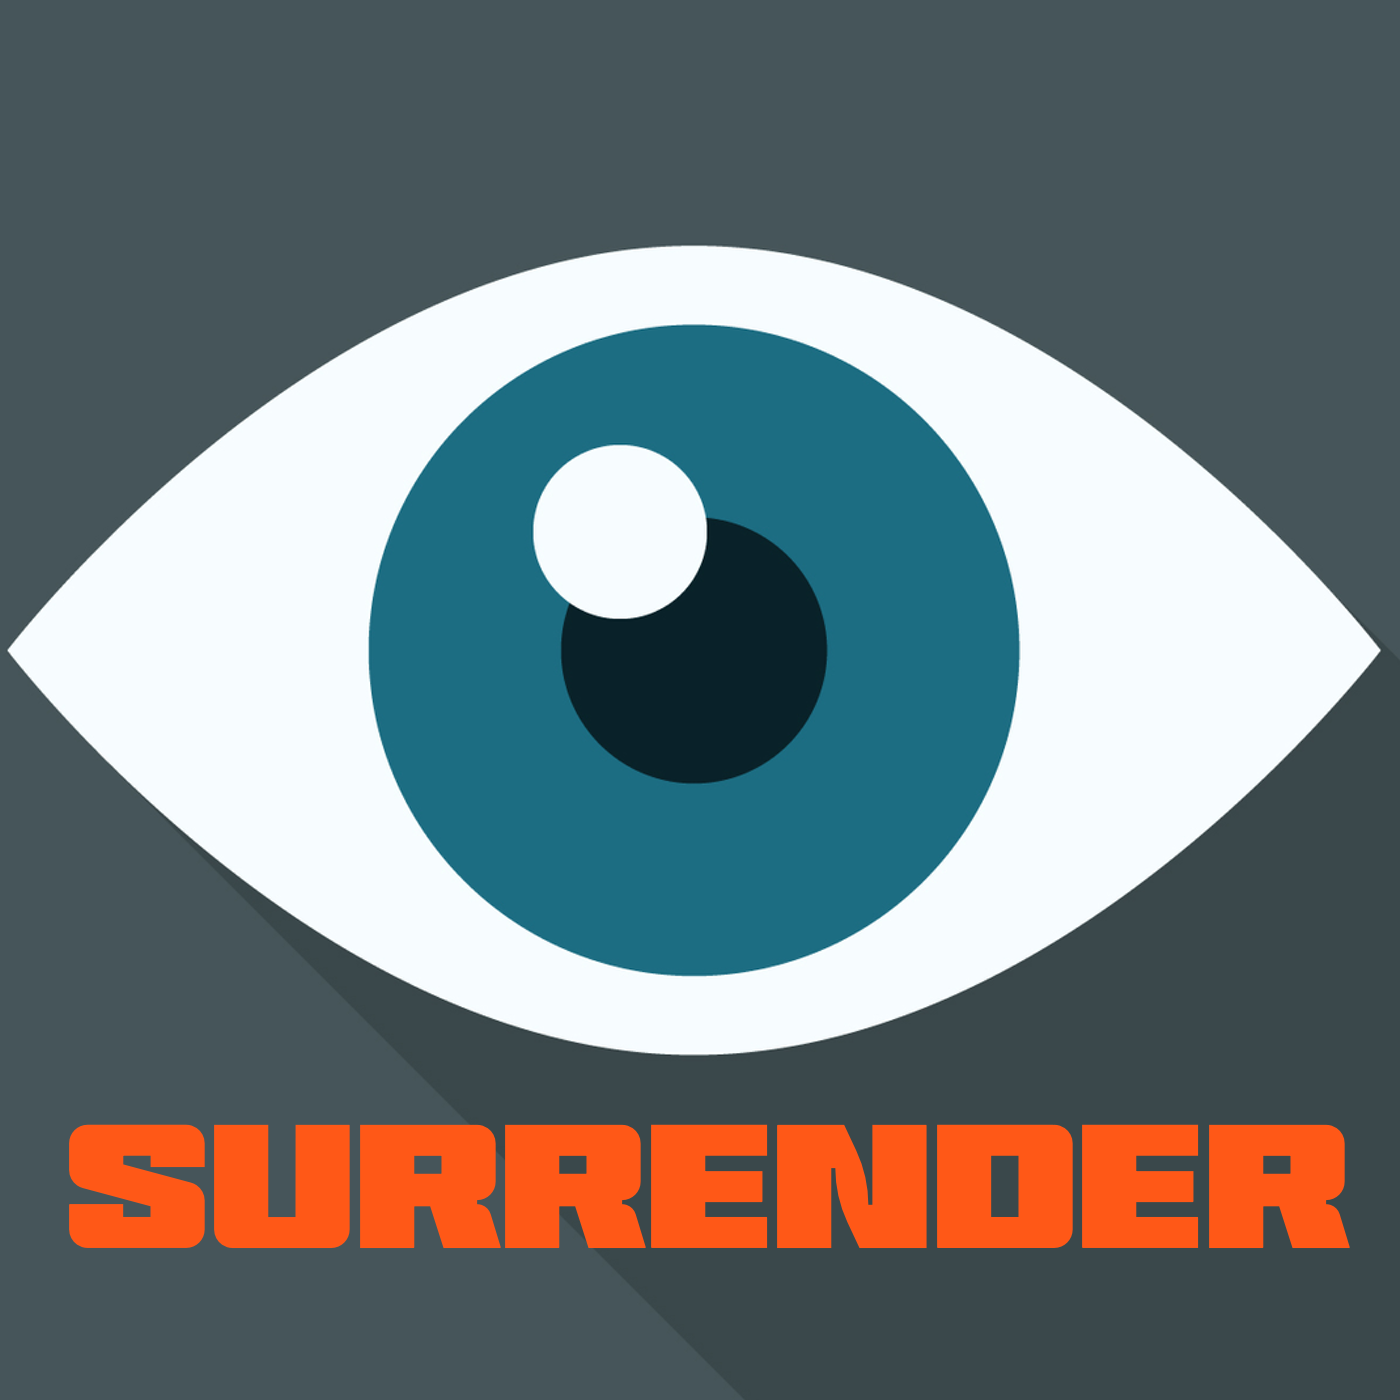 Surrender - A web of secret projects, a presidential assassination attempt, and the ongoing mastery of machines over people. Surrender tracks the story of the heroic battle to stop machine control.  Twenty-episode serial drama.Written, produced, and directed by Lee Schneider, based upon his novel. Surrender is in development for production in 2020.